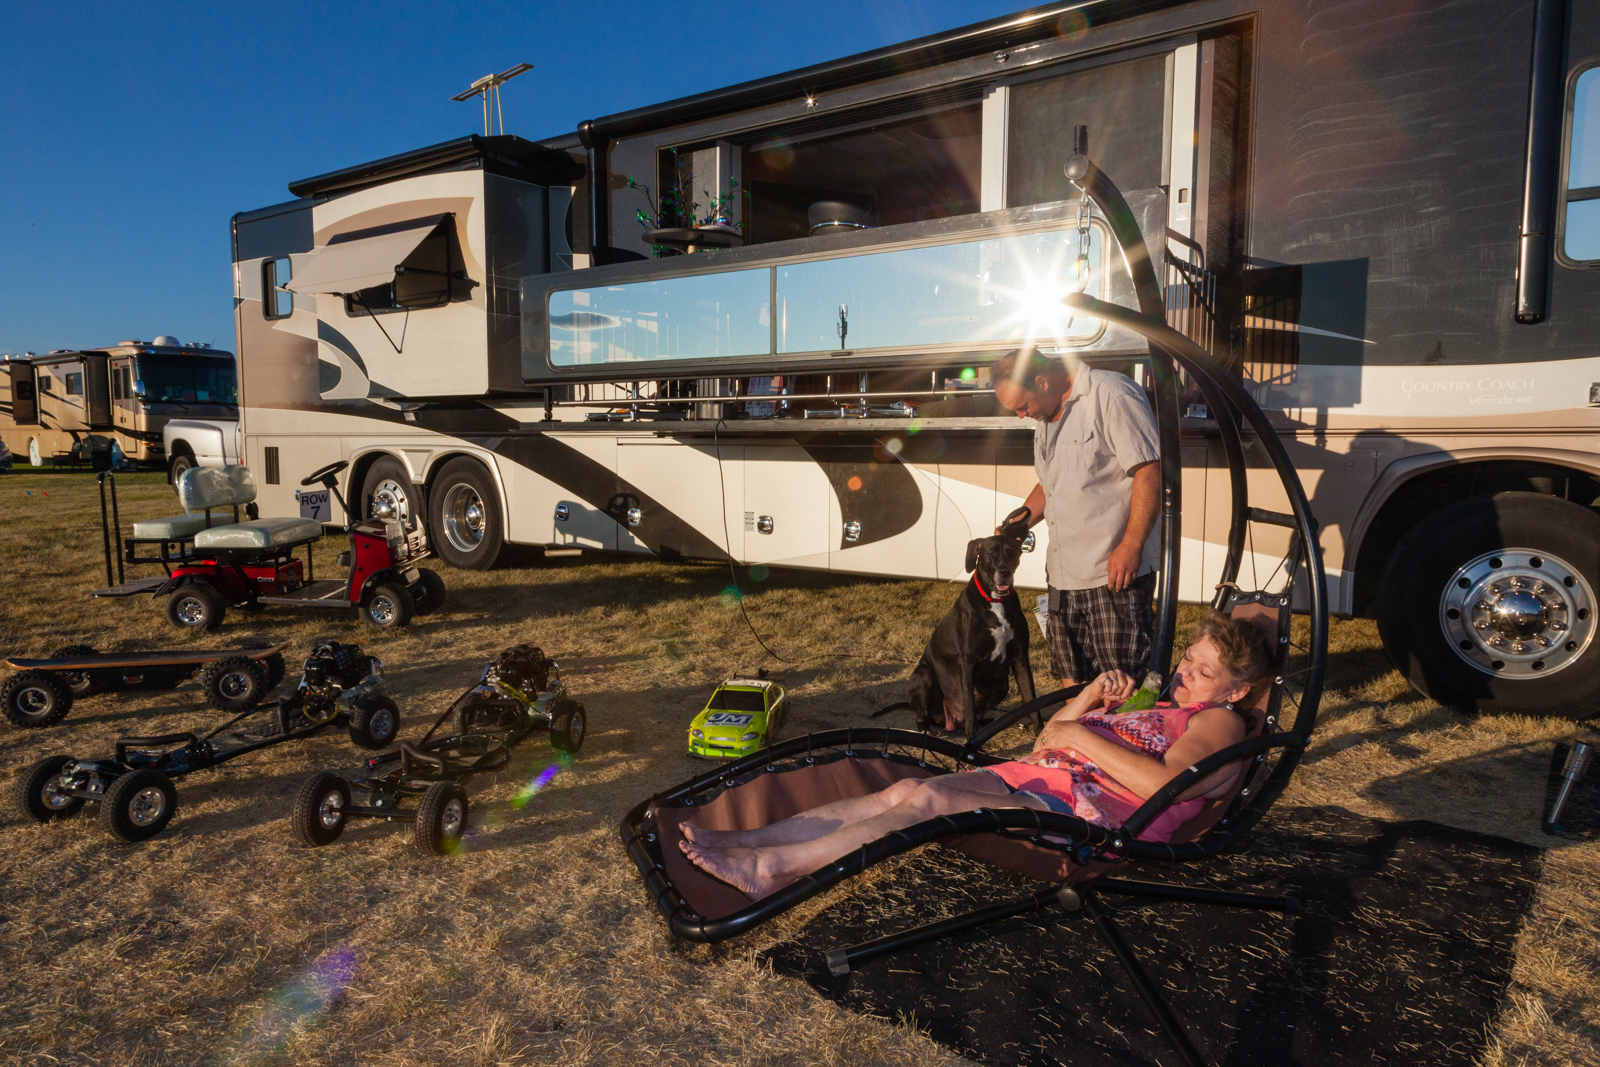 Steve Collins of Atkins, Iowa in his 45-ft. RV. Credit: Andy Isaacson